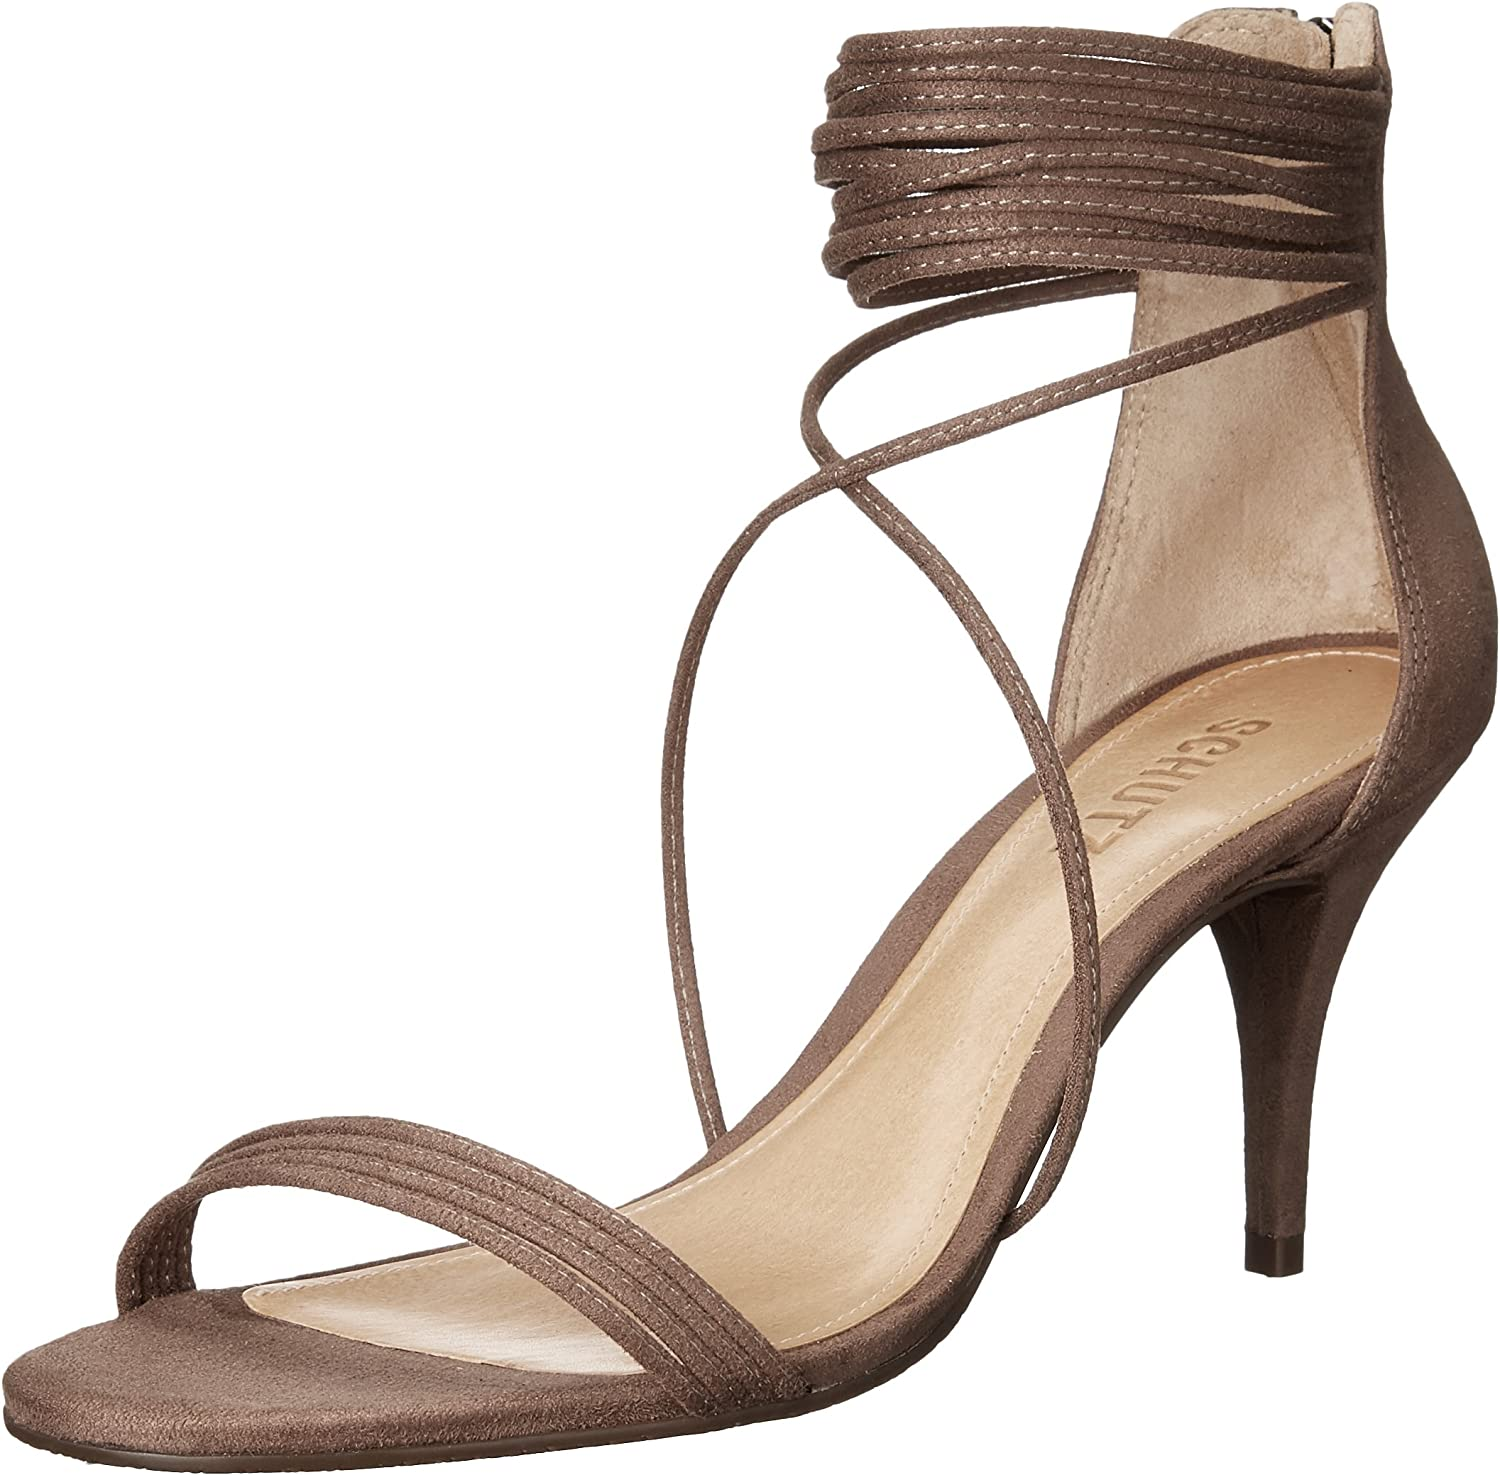 Schutz Womens Violita Dress Sandal